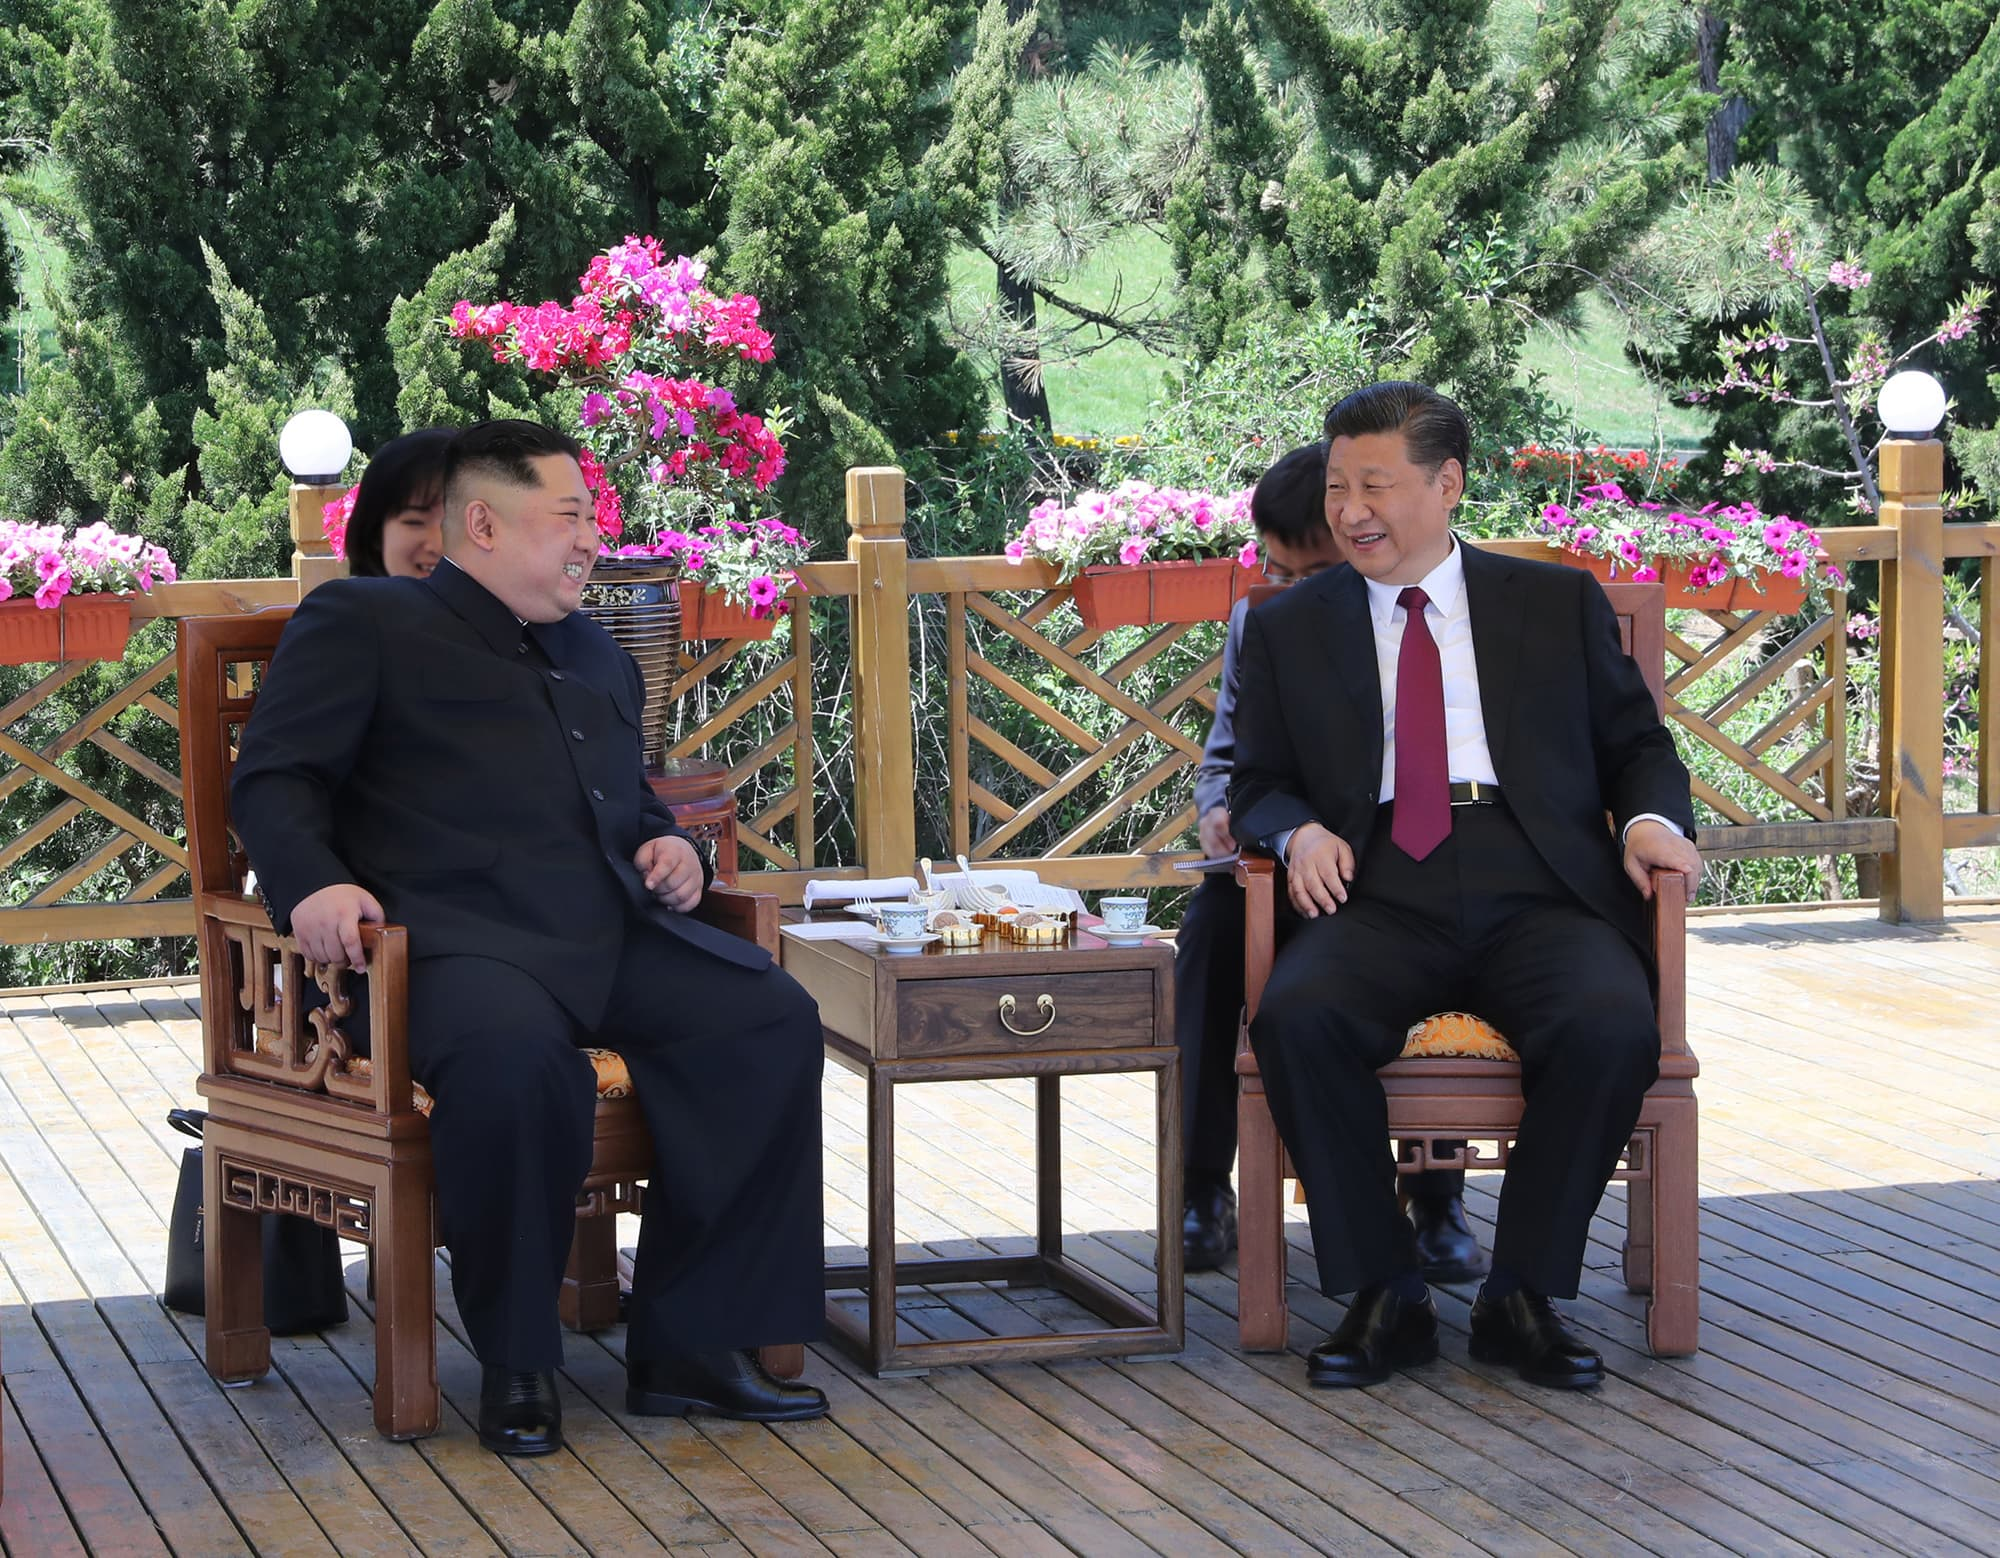 China's Xi Jinping arrives in North Korea on a visit 'big on symbolism'